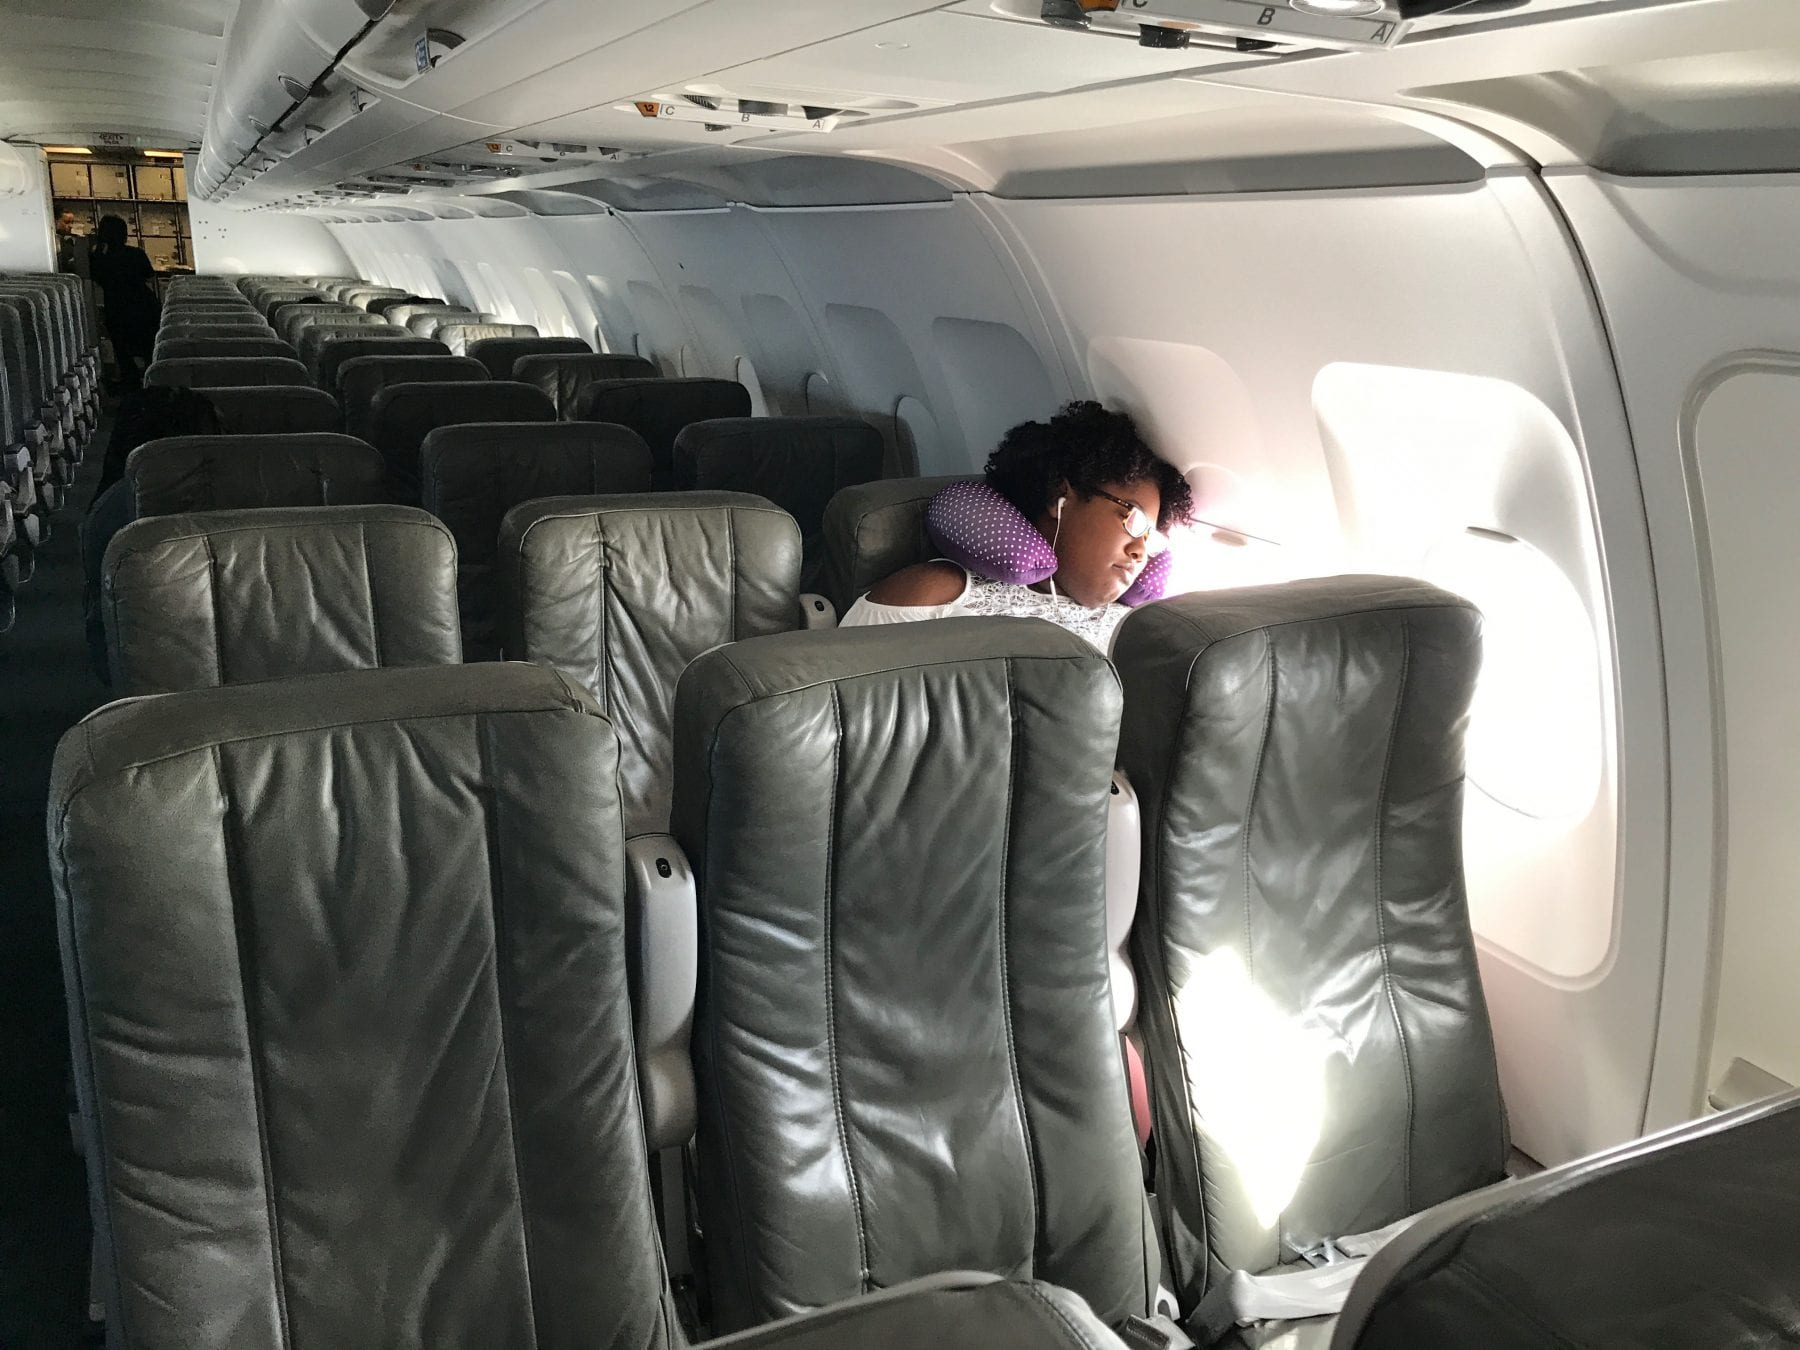 This was my JetBlue flight from JFK in New York to Havana. Not quite a private jet but only a handful of the seats were filled. The travel warning was definitely having an affect.